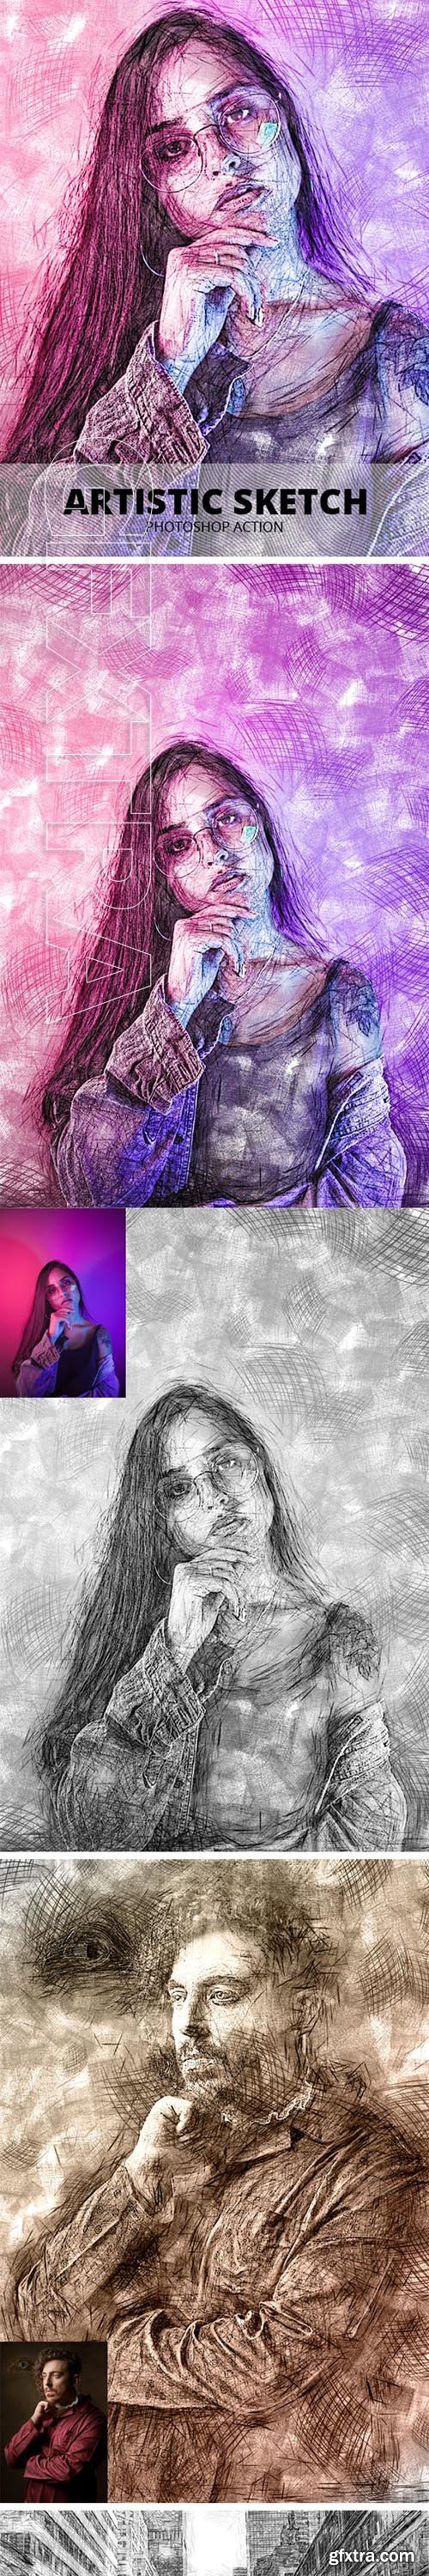 GraphicRiver - Artistic Sketch Photoshop Action 23796175